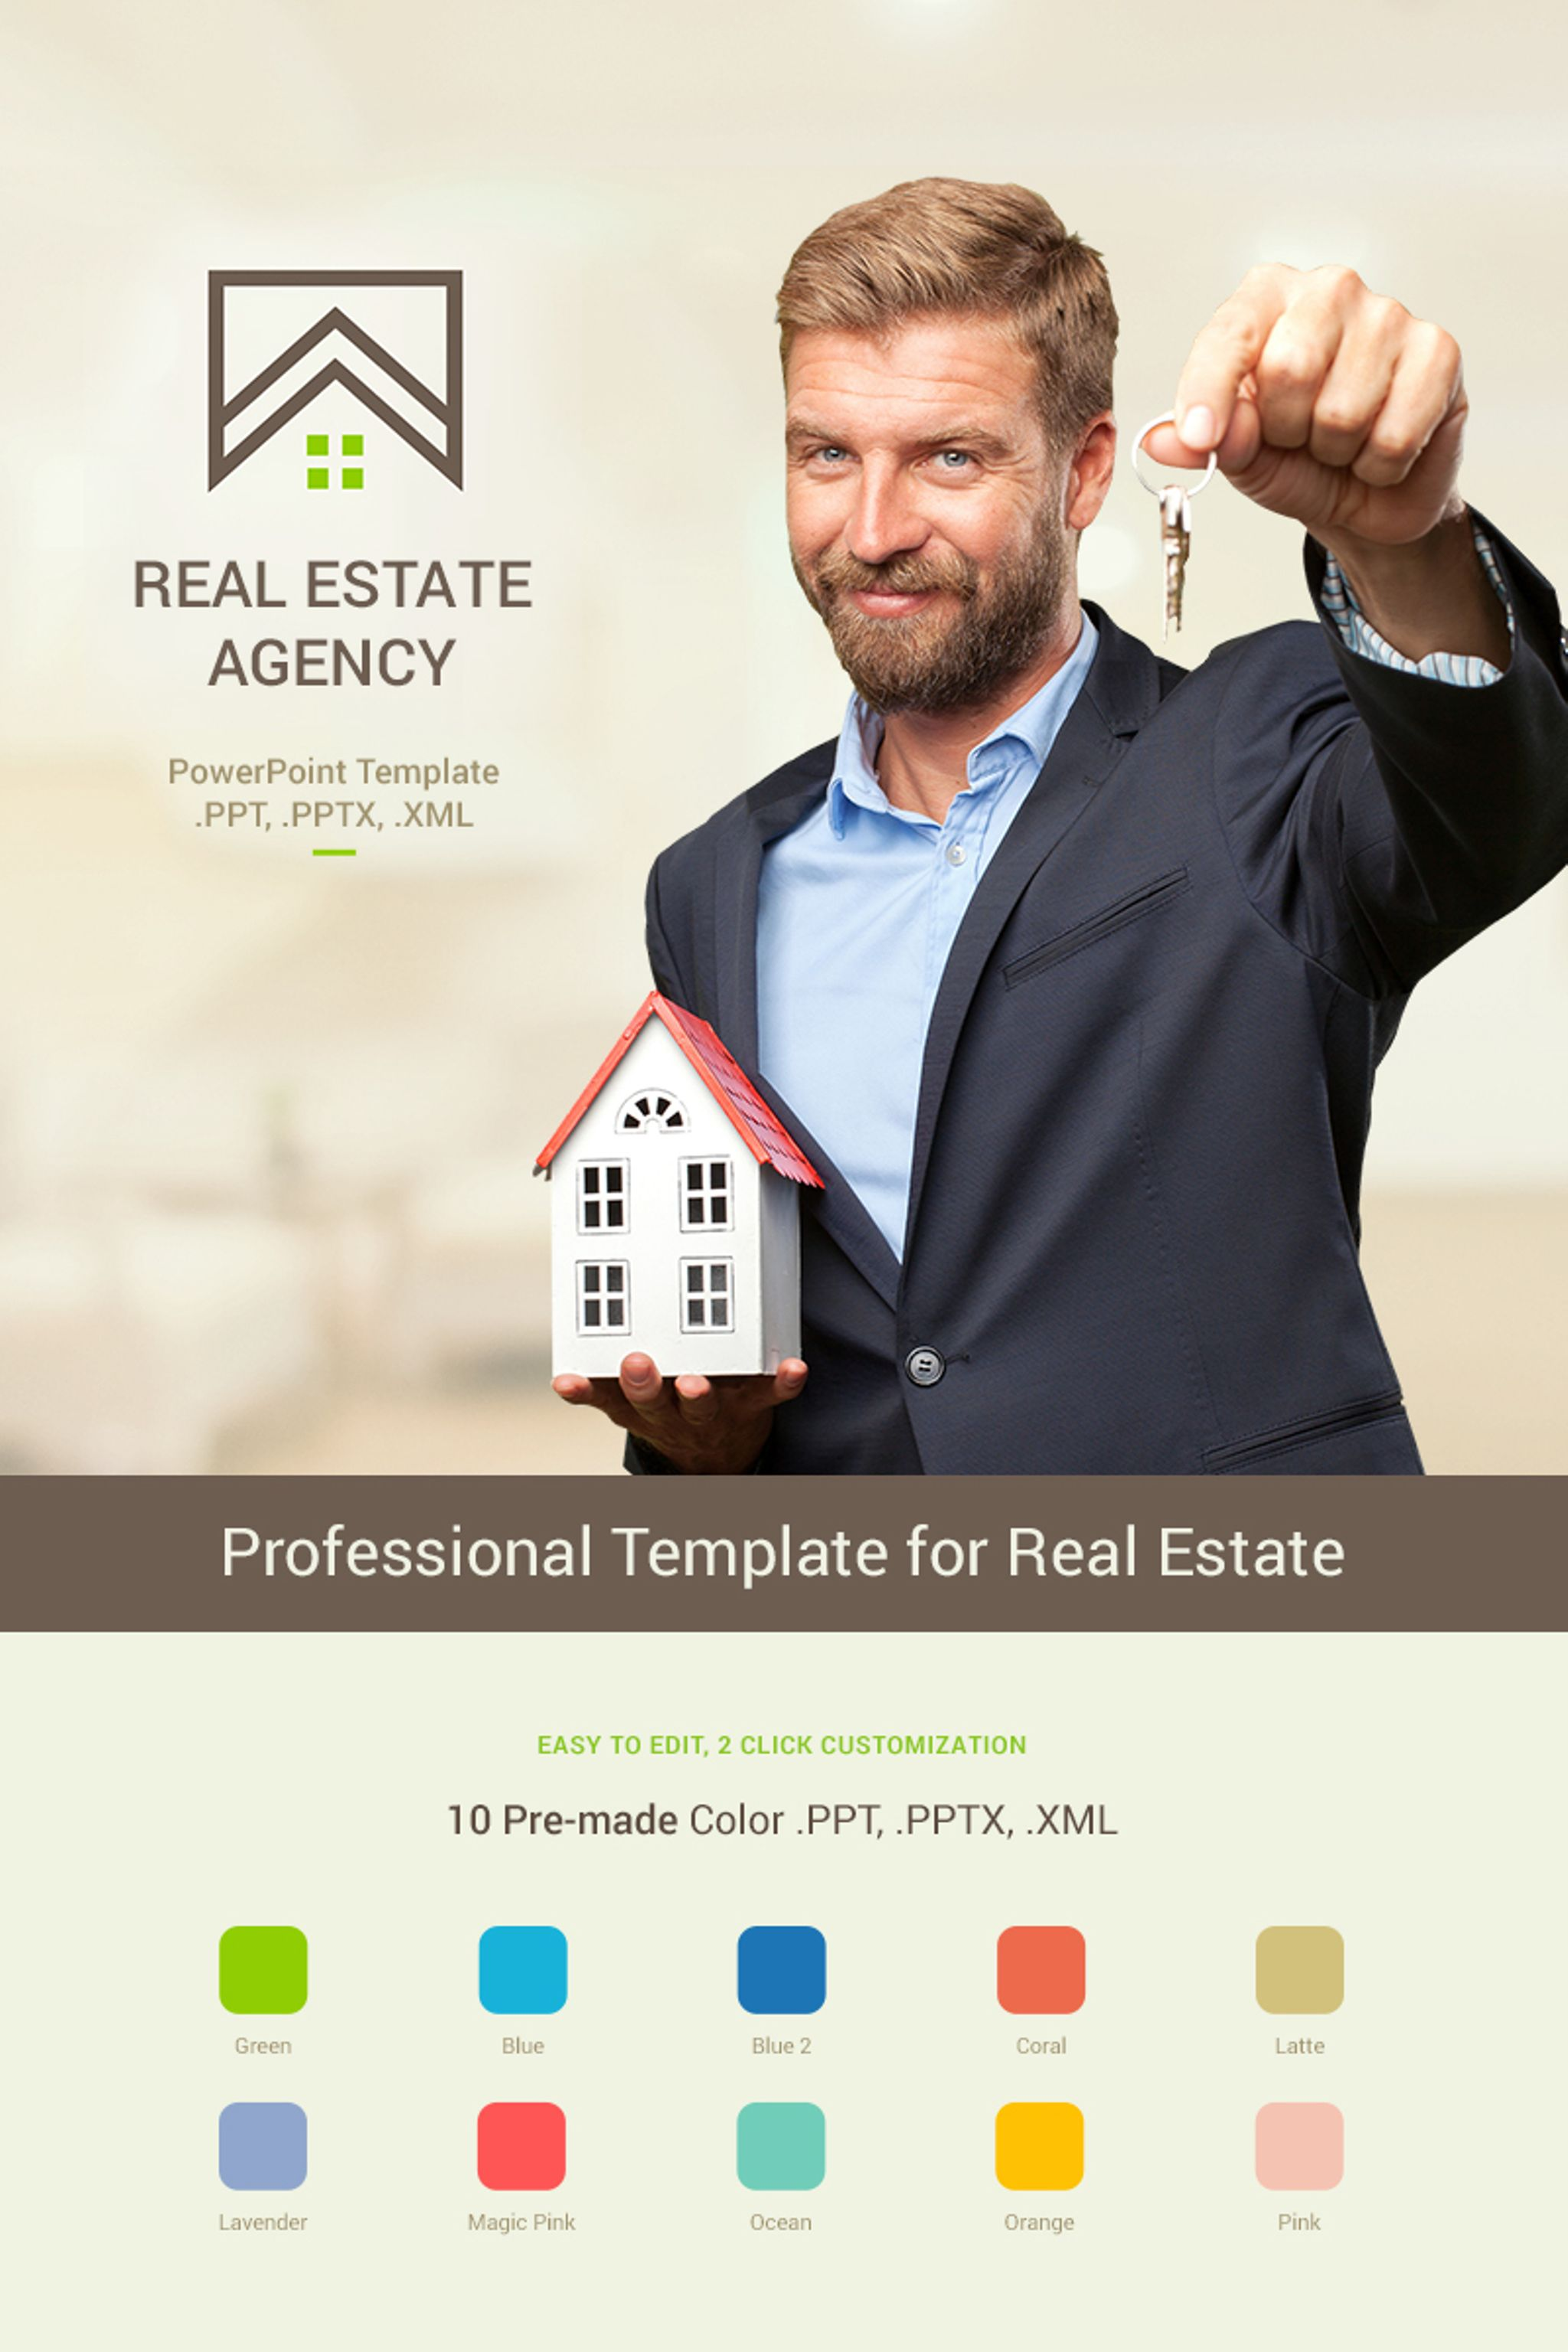 Real estate presentation powerpoint template 65966 real estate presentation powerpoint template toneelgroepblik Gallery